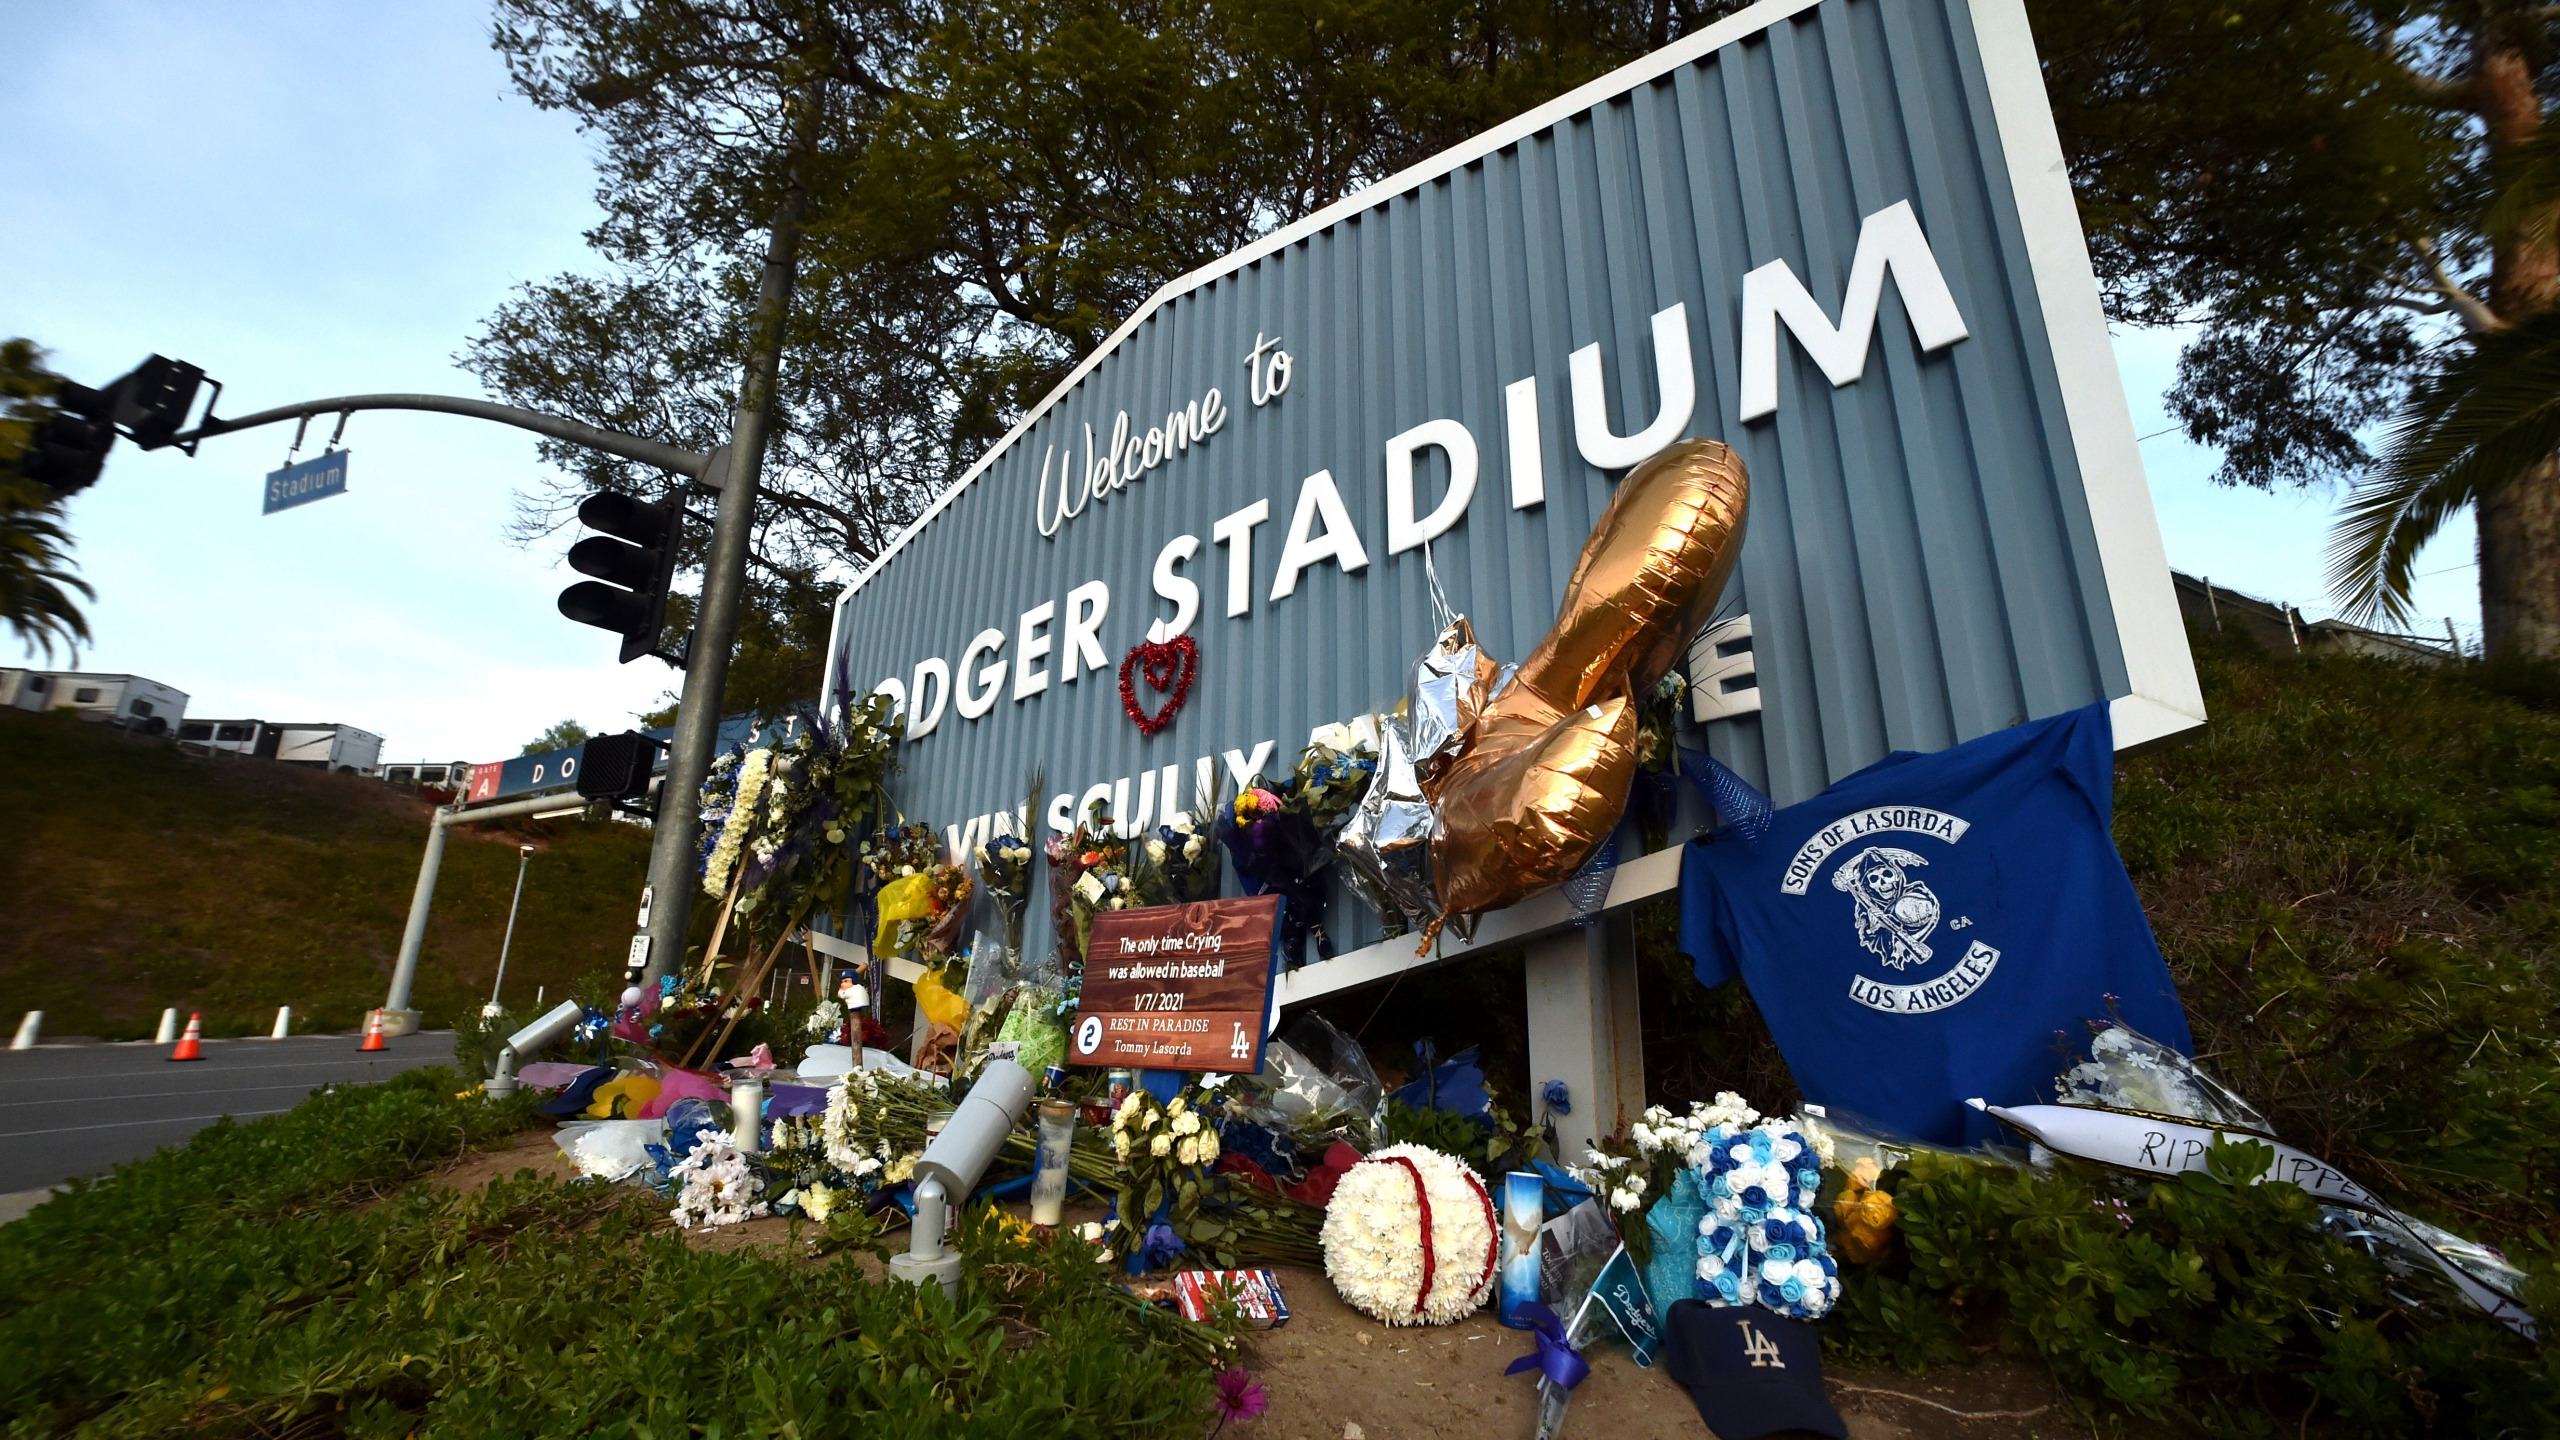 A makeshift memorial along Vin Scully Way in front of Dodger Stadium in Los Angeles on Jan. 13, 2021, honors former Dodgers manager Tommy Lasorda, who died last week. (Keith Birmingham/The Orange County Register via AP)